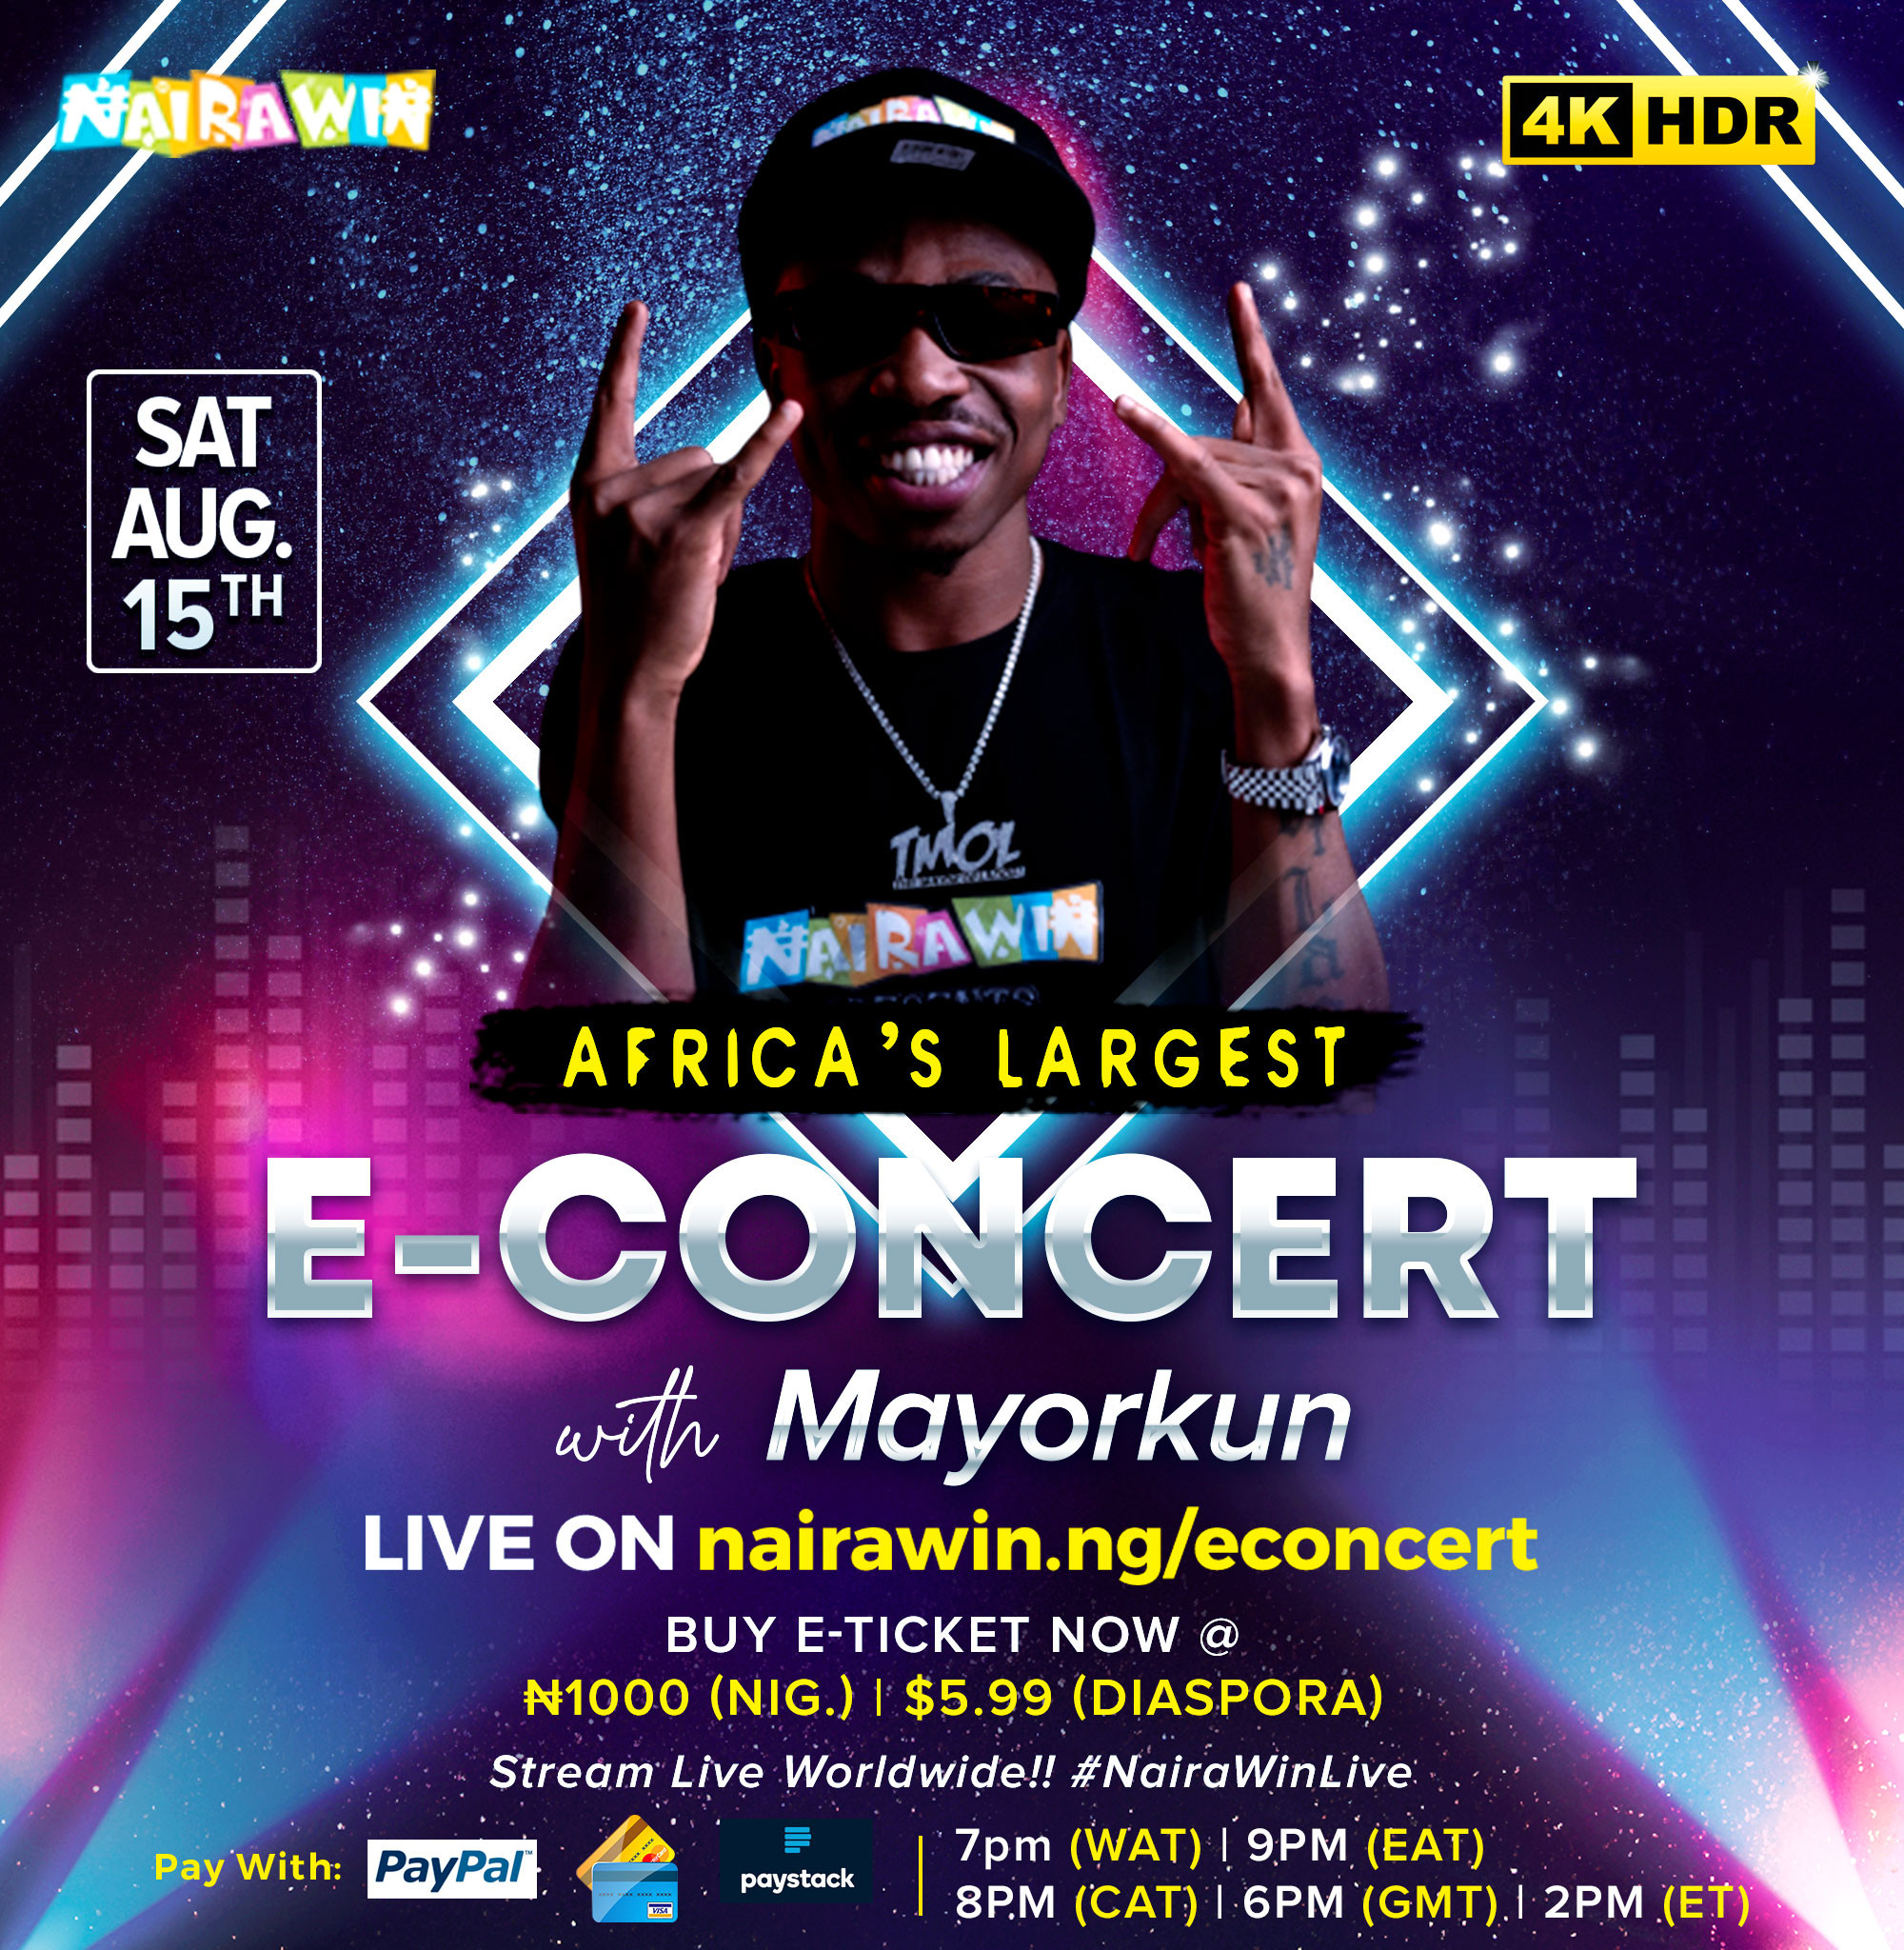 Davido, Tiwa Savage, Naira Marley and Mayorkun to perform in 4KHD at Africa?s largest E-concert, NairaWin Live